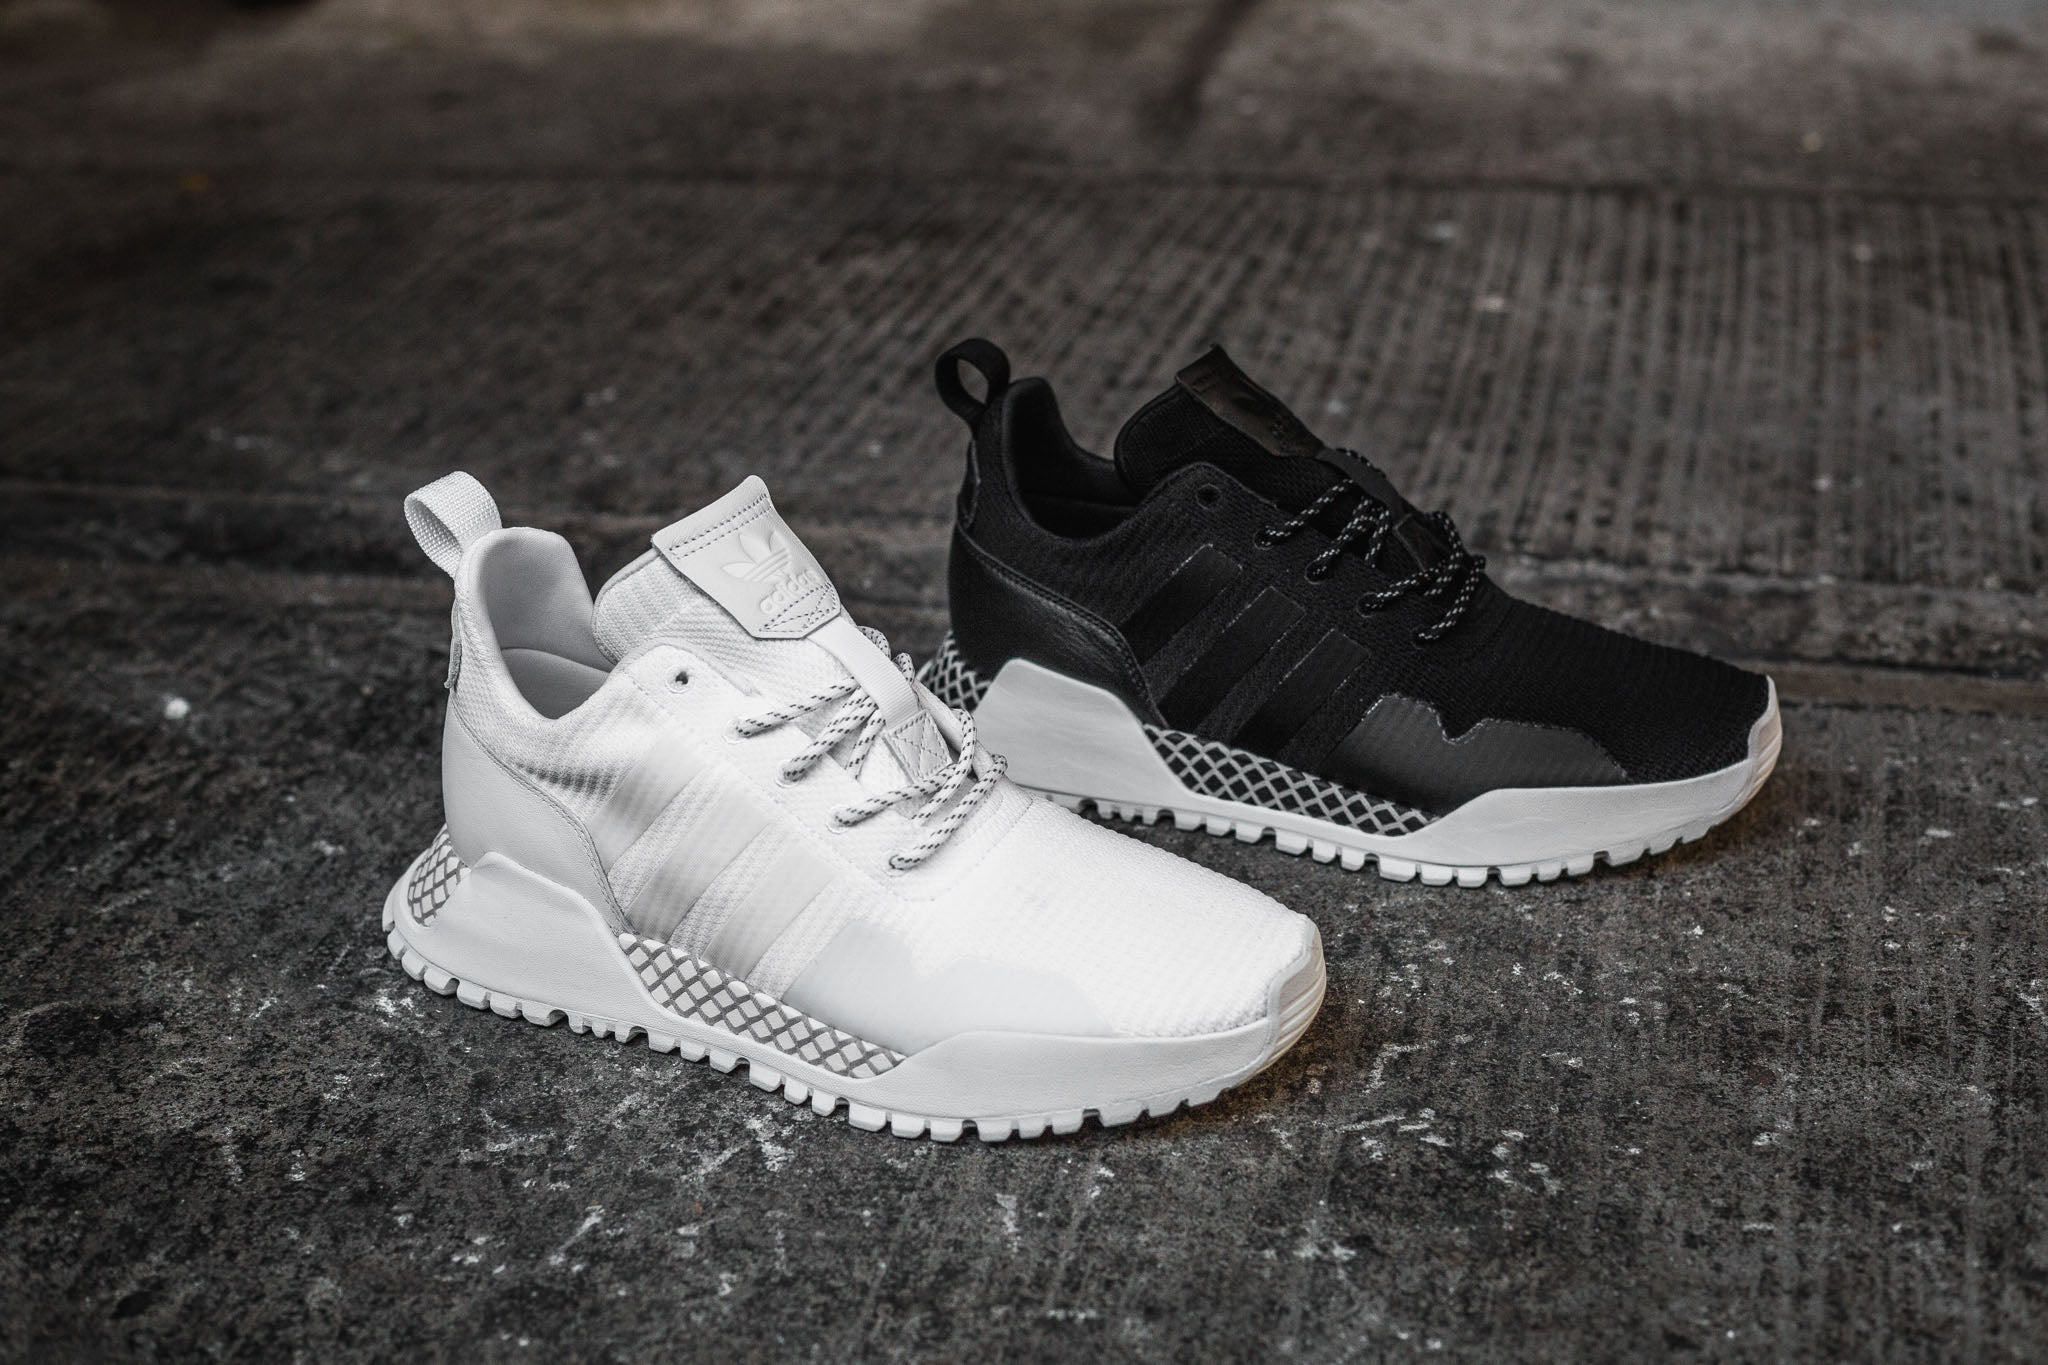 sports shoes 7f02a 3c90c Inspired by the unpredictable weather conditions of winter, adidas  Originals introduces two new silhouettes this adidas Originals Winter AF  1.3 PK  AF 1.4 ...